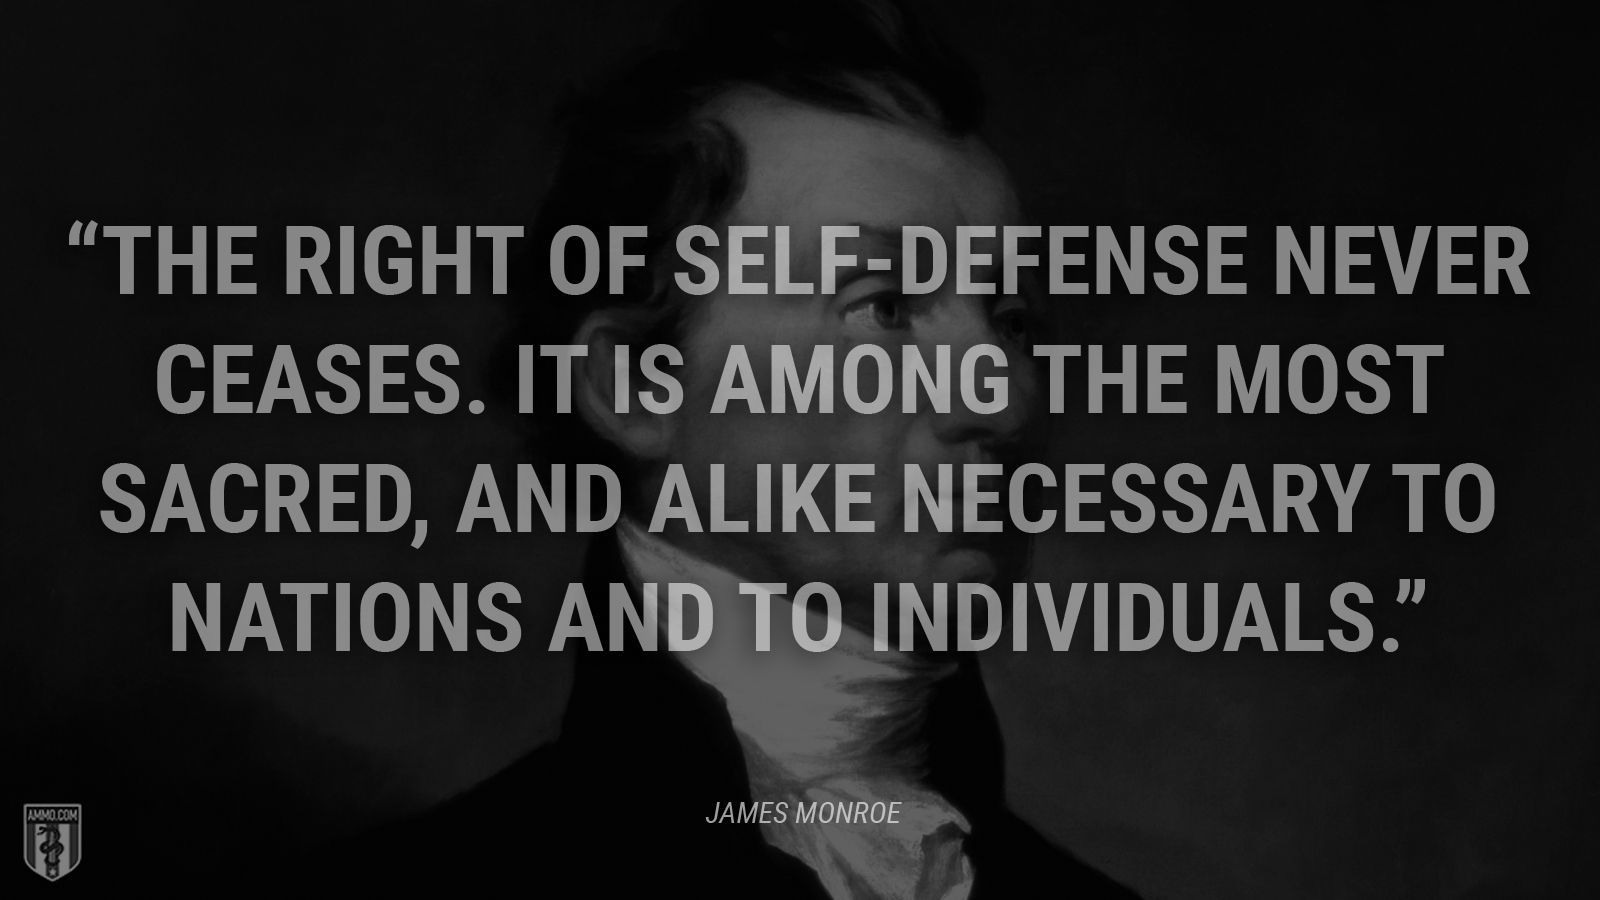 """The right of self-defense never ceases. It is among the most sacred, and alike necessary to nations and to individuals."" - James Monroe"